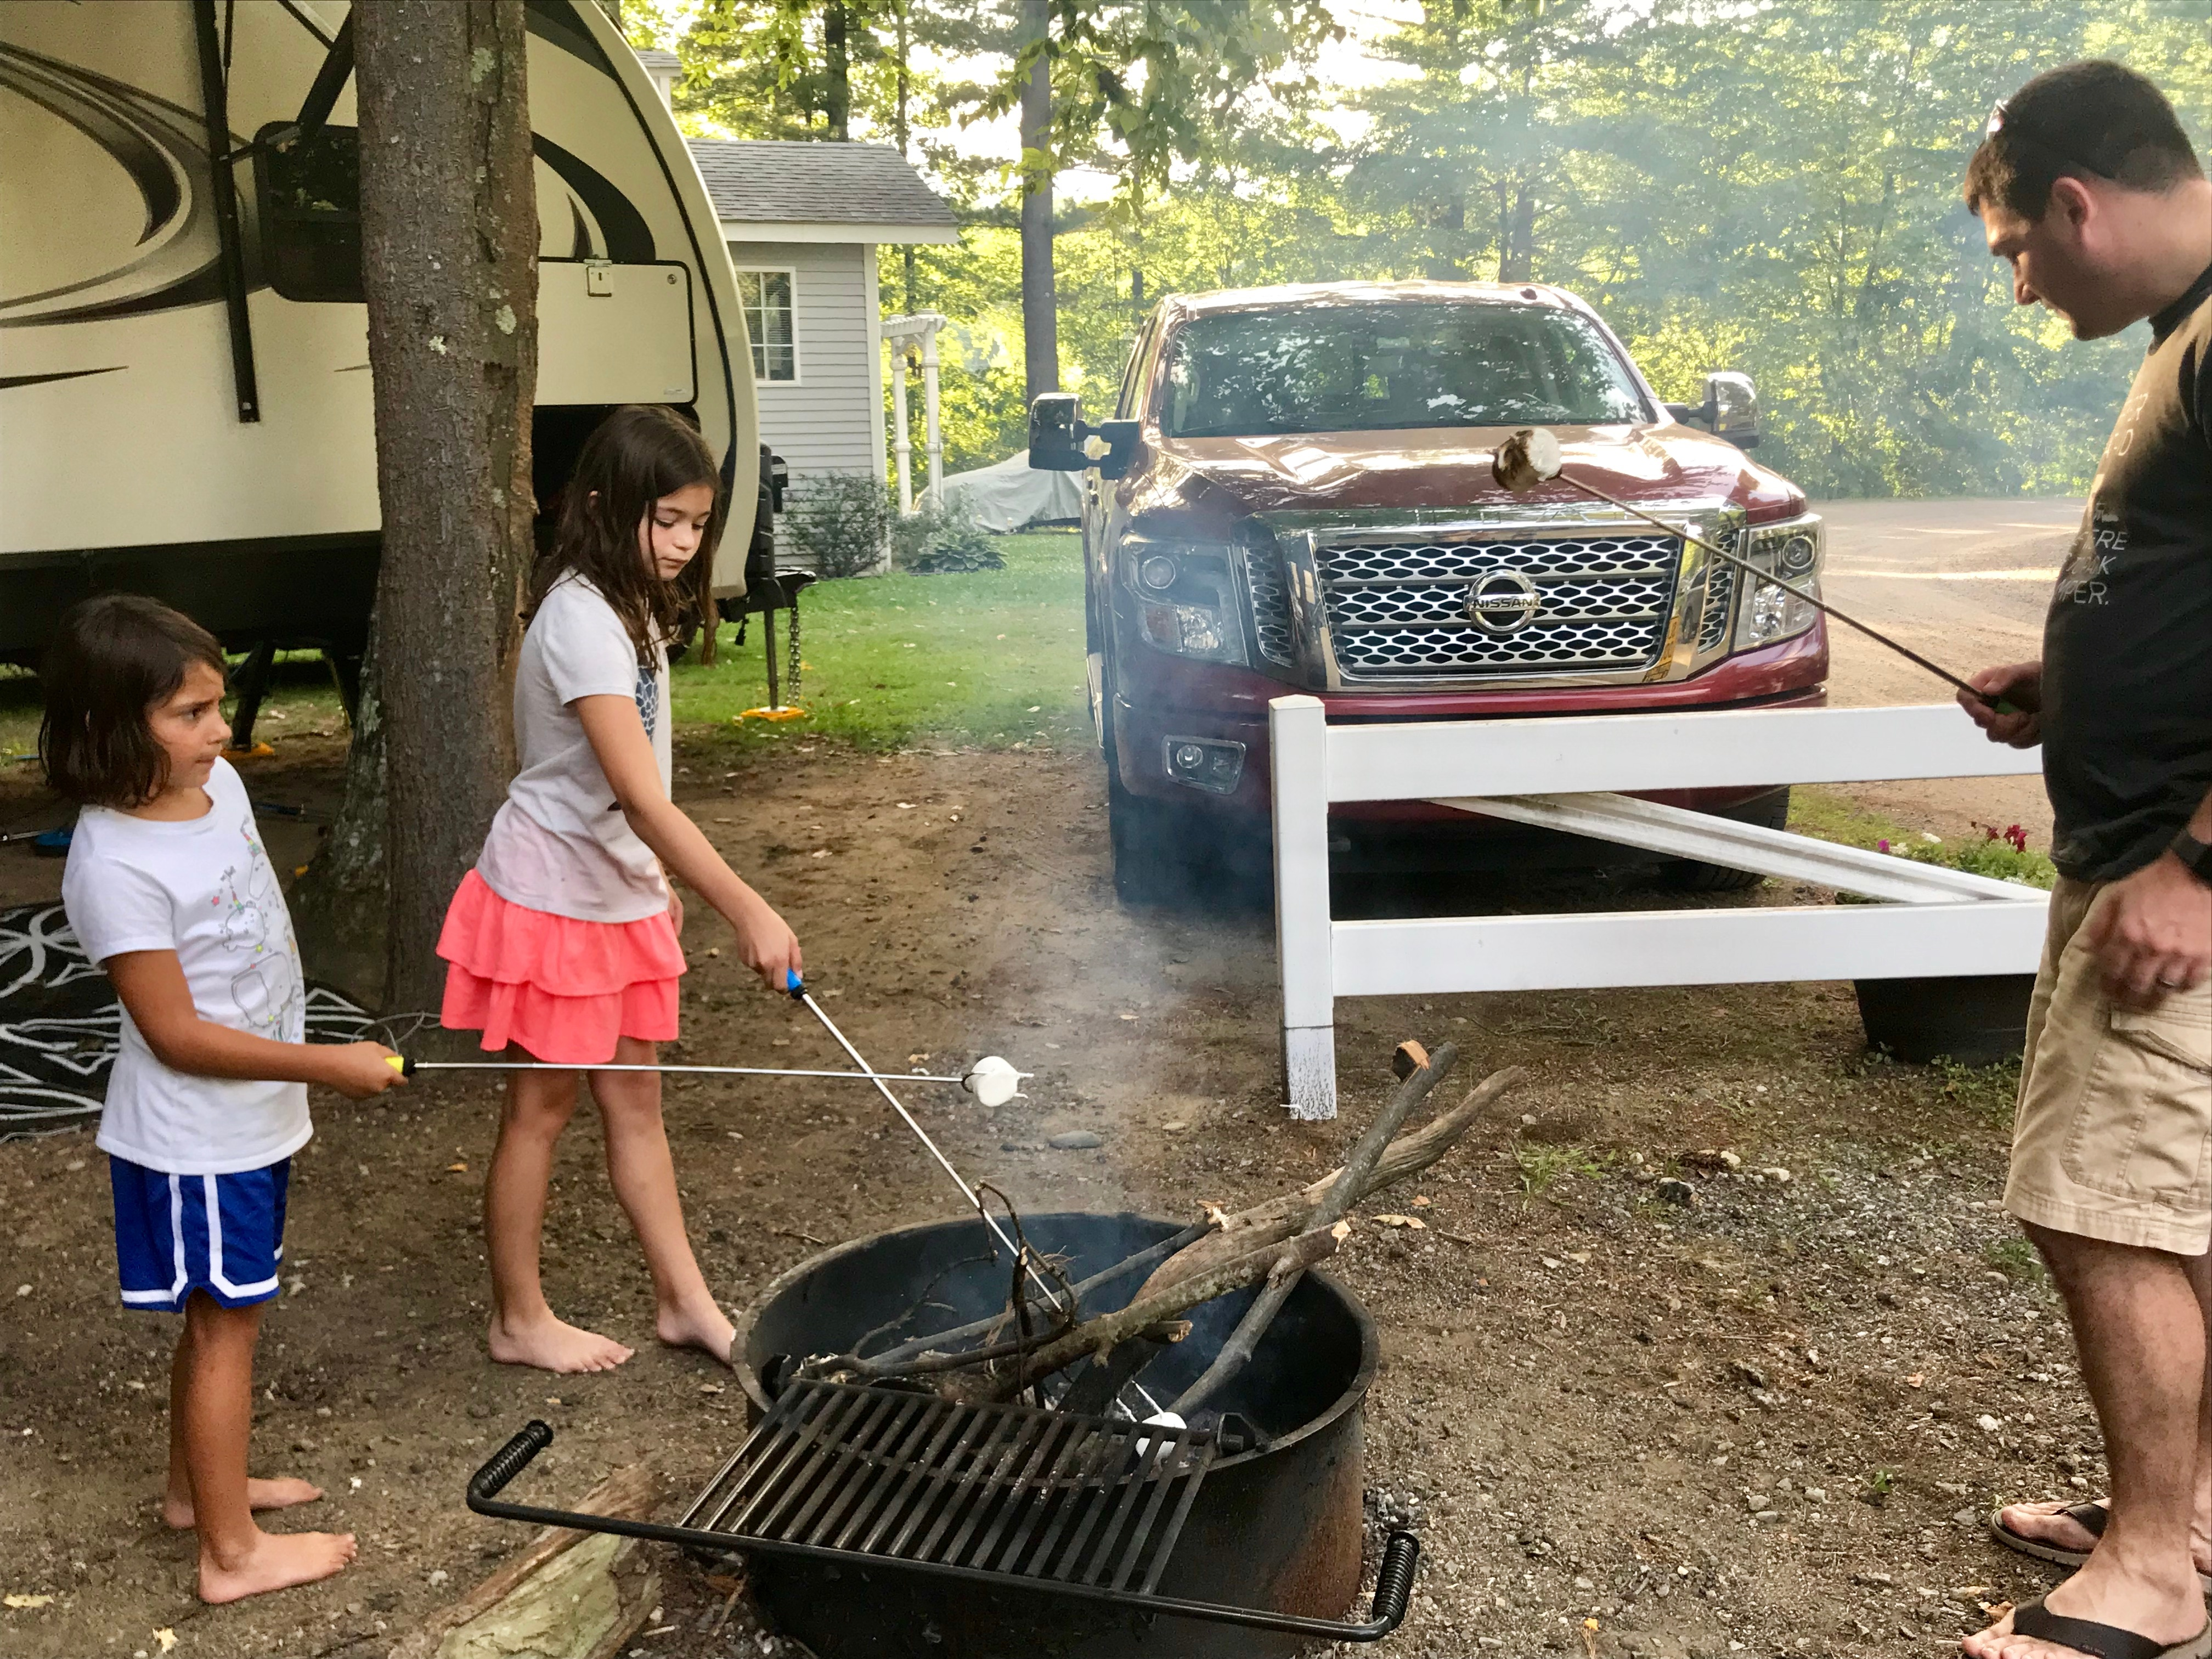 Campers Inn RV COO Ben Hirsch roasts marshmallows with his daughters